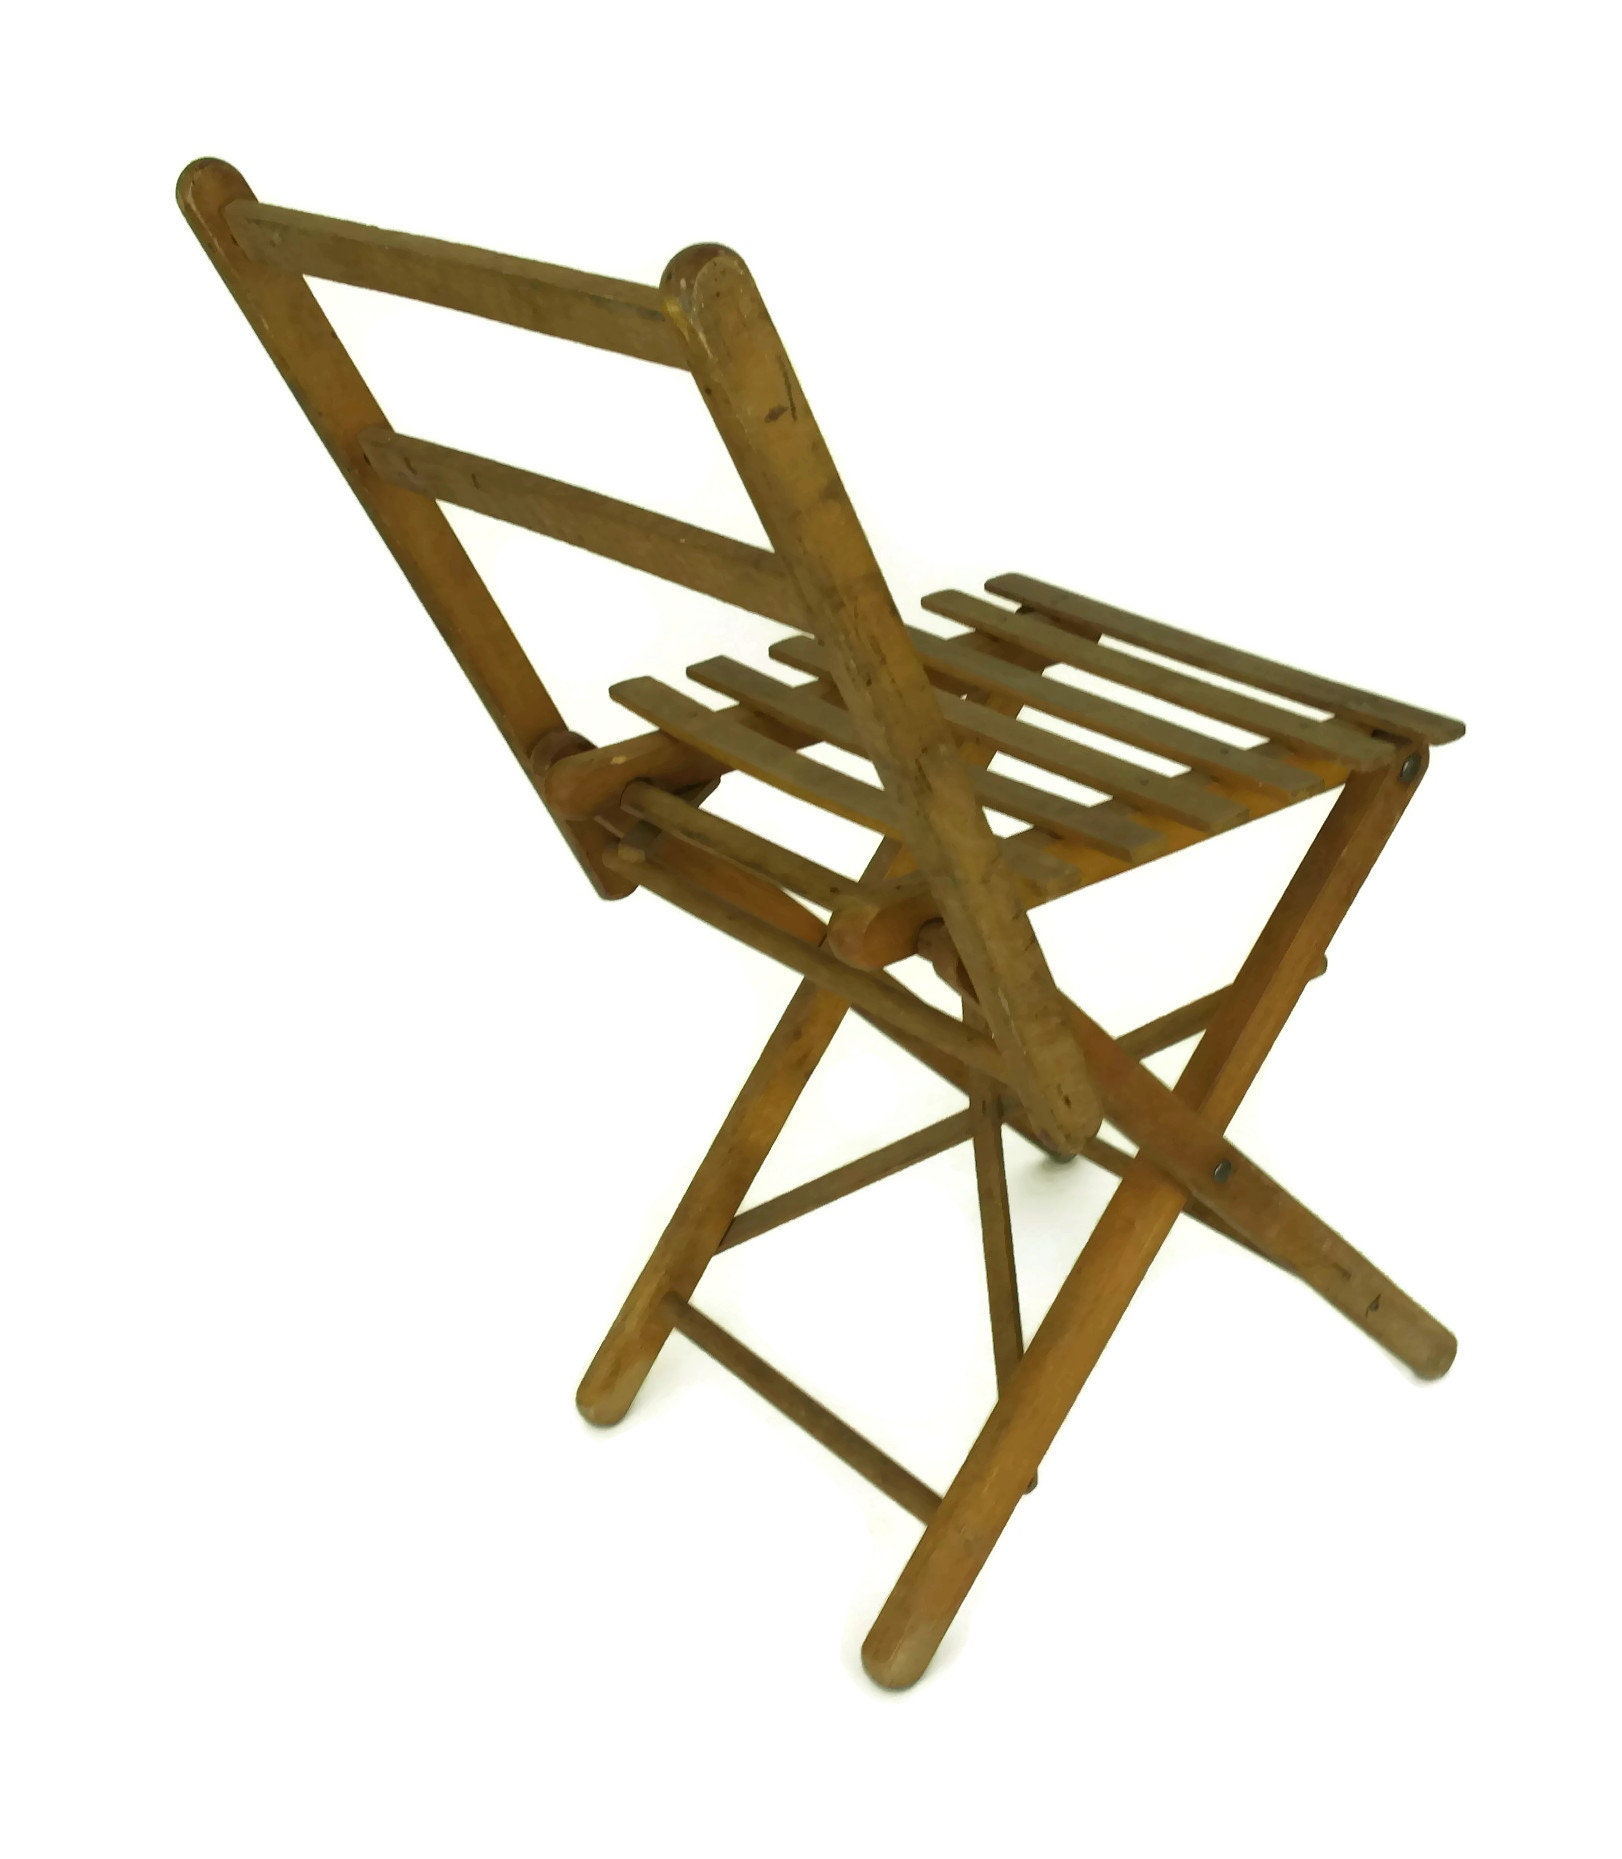 Vintage French Wood Folding Stool Small Rustic Fishing